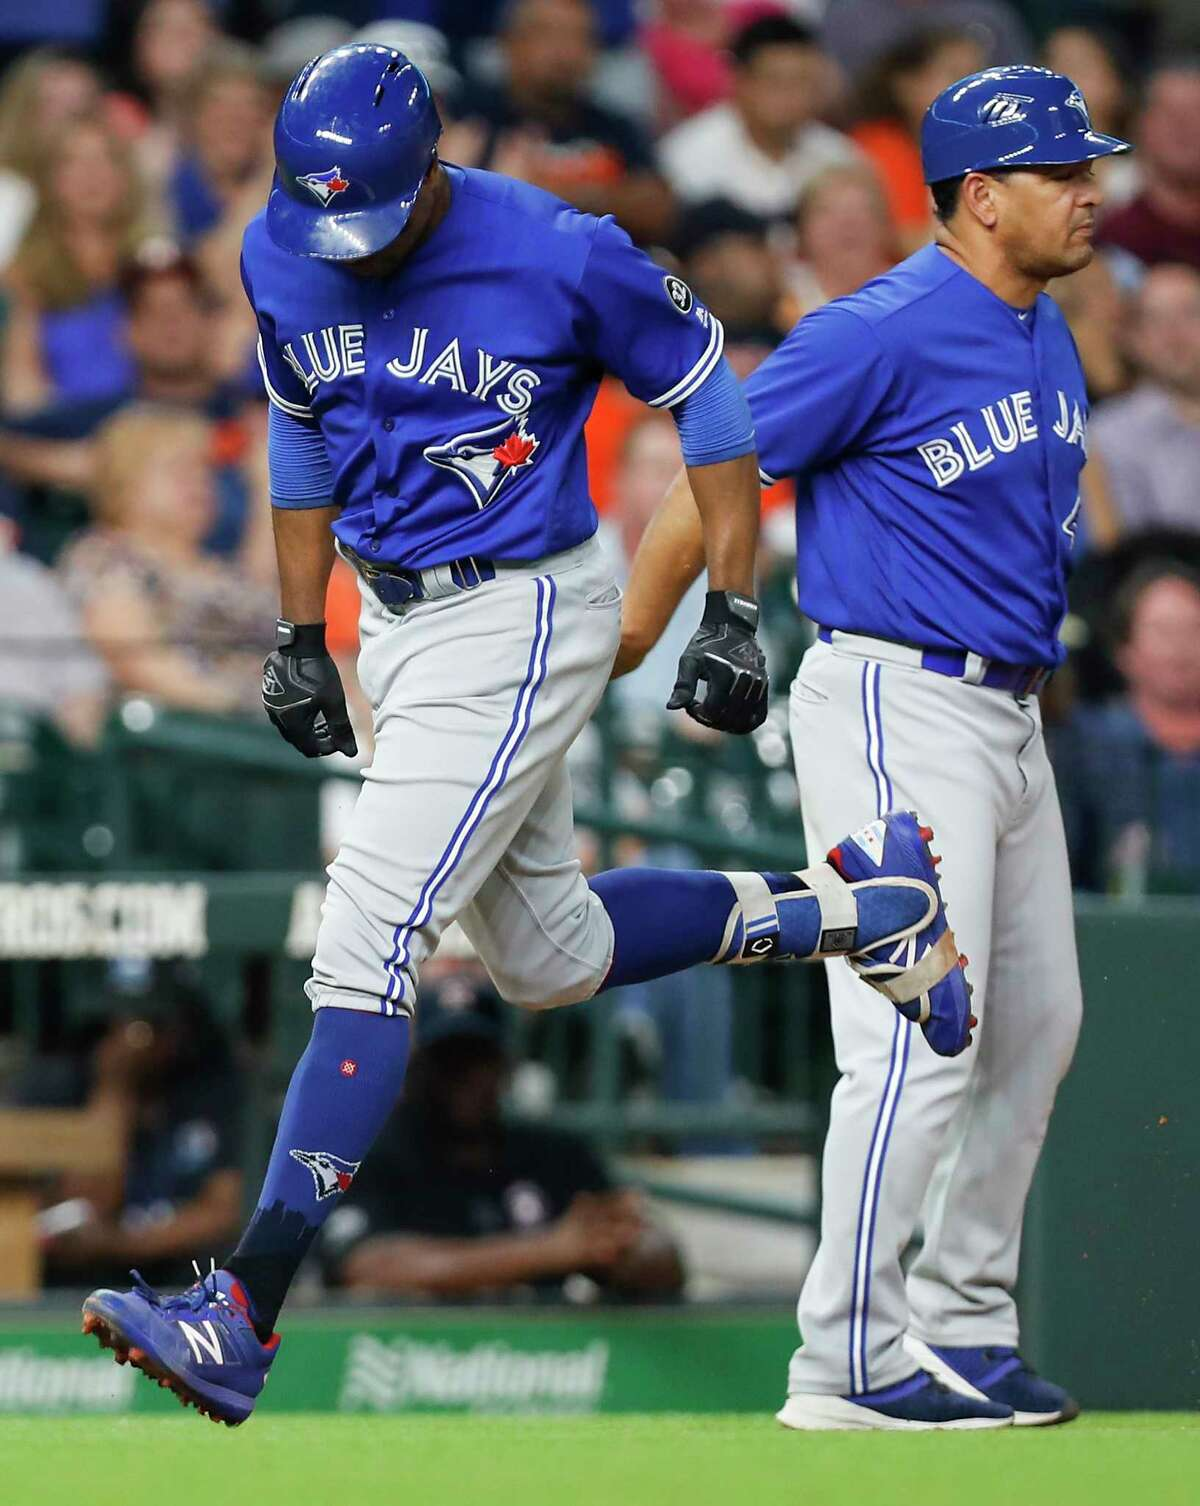 Toronto Blue Jays right fielder Curtis Granderson rounds third after hitting a solo home run off Houston Astros starting pitcher Justin Verlander during the seventh inning of a major league baseball game at Minute Maid Park on Monday, June 25, 2018, in Houston.